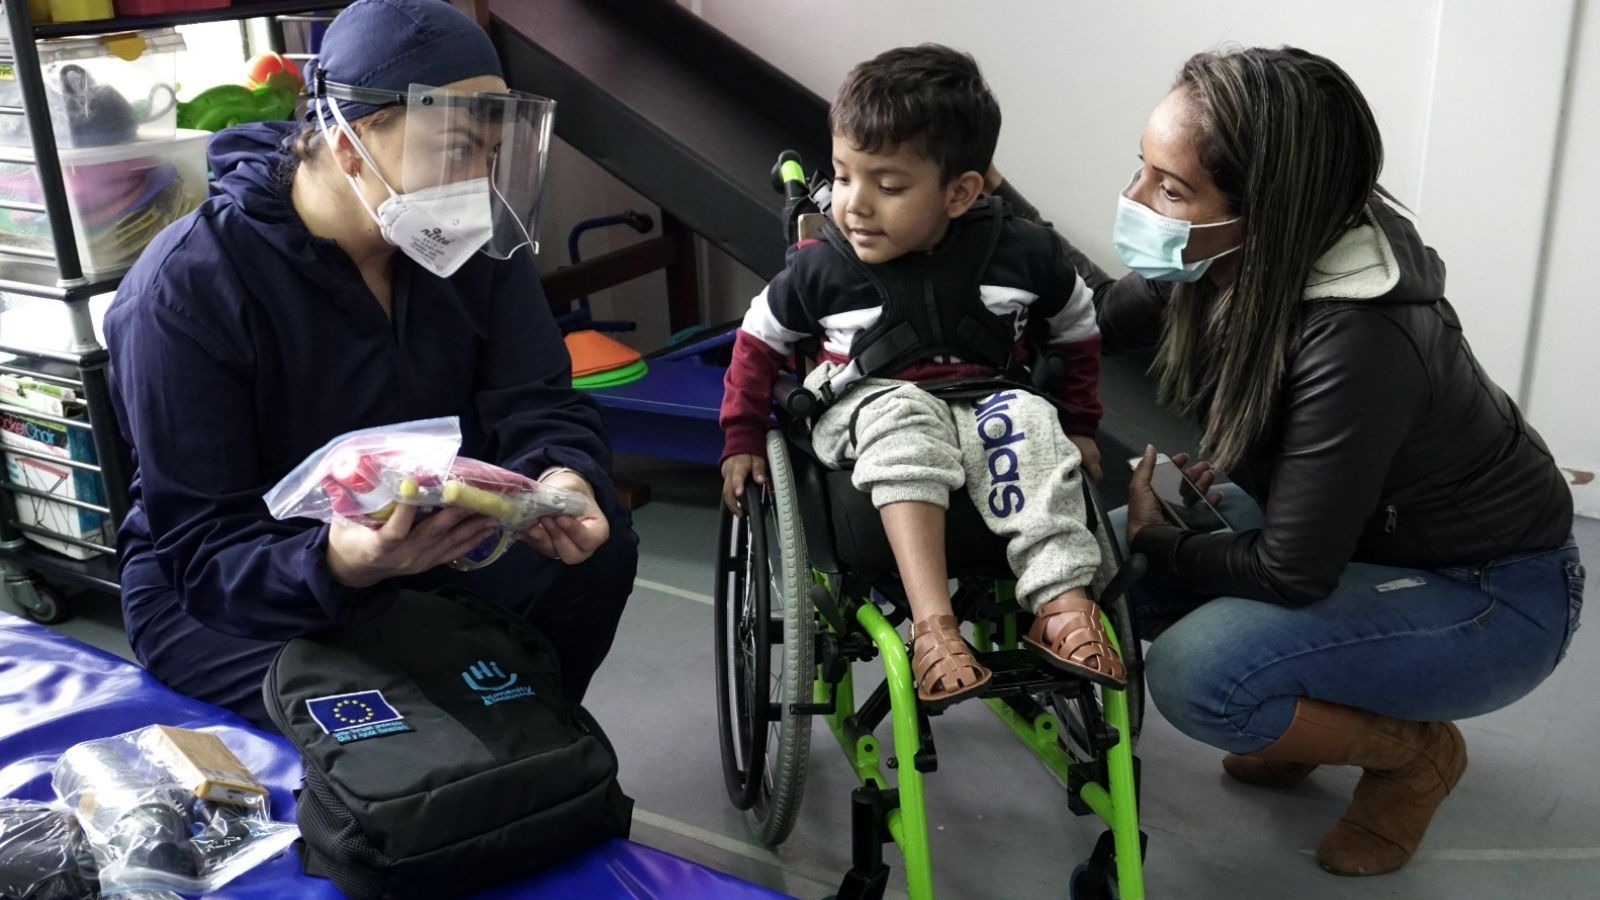 A young boy in a wheelchair continues to receive rehabilitation in Colombia during the pandemic.